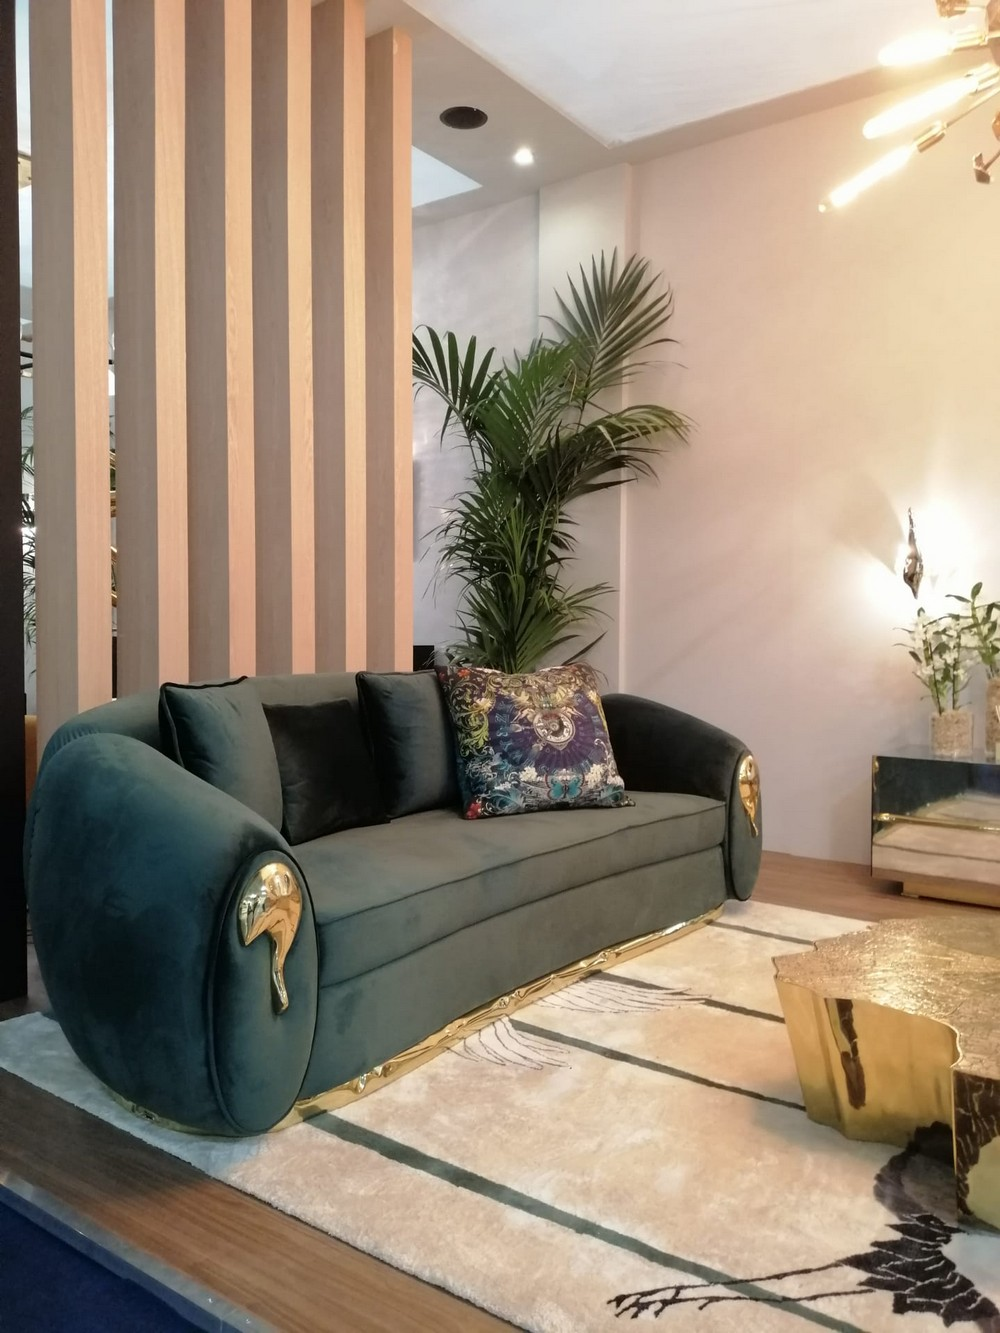 CovetED Unveiled The Best Home Decor Inspirations From Decorex 2019 decorex CovetED Unveiled The Best Home Decor Inspirations From Decorex 2019 CovetED Unveiled The Best Home Decor Inspirations From Decorex 2019